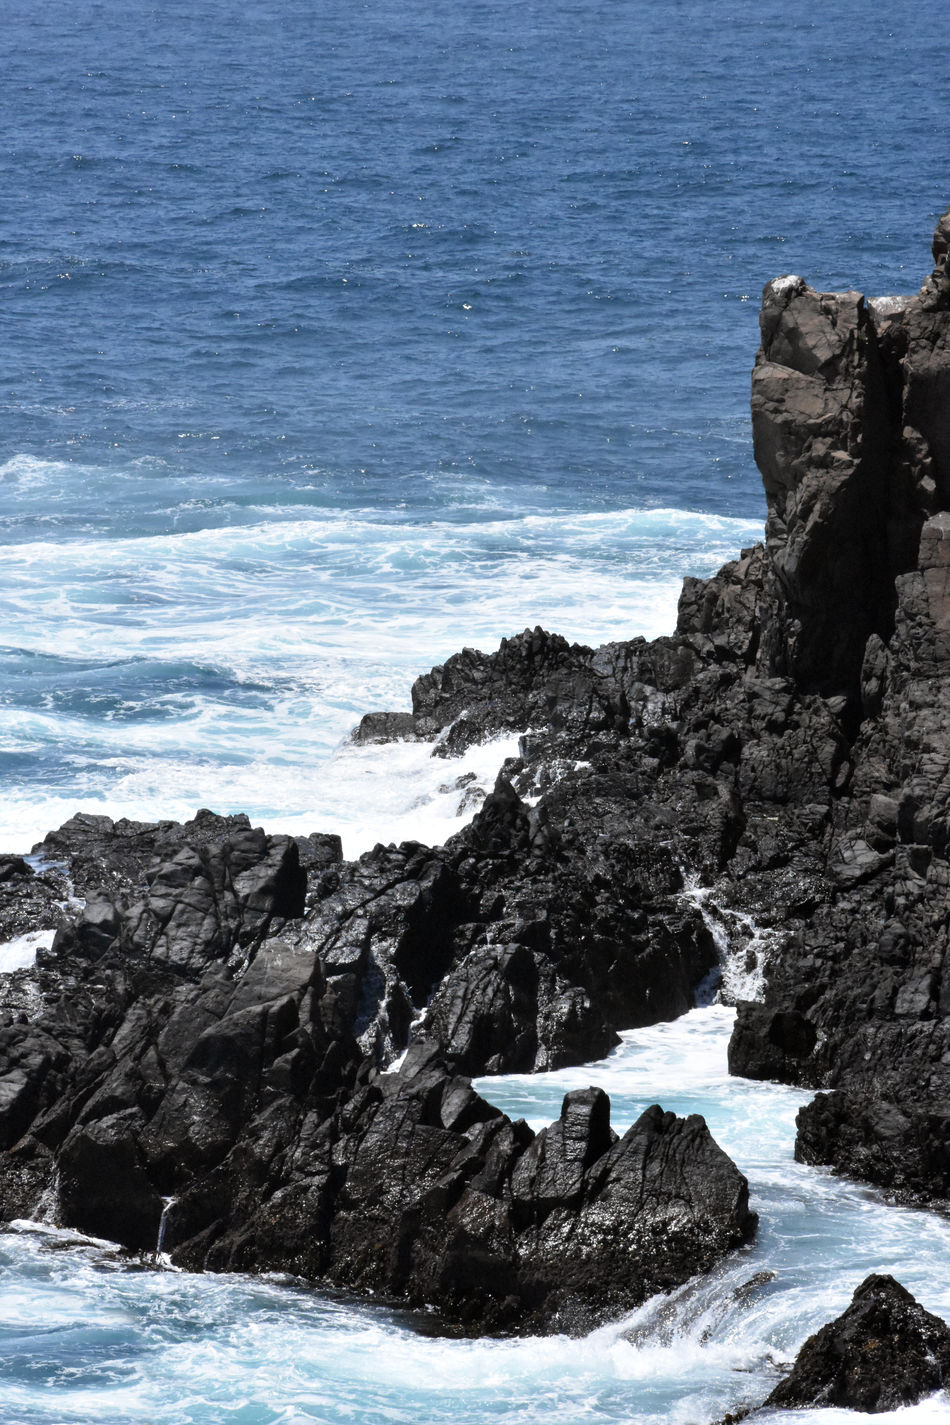 Beauty In Nature Blue Blue Wave Ensenada Ensenada B.C. Landscape Ensenada Mexico Nature Nature Nature Photography Nature_collection No People Rock Formation Rok Sea Seascape Tranquility Water Watter Watter_collection Watterfall Watterfalls Wave